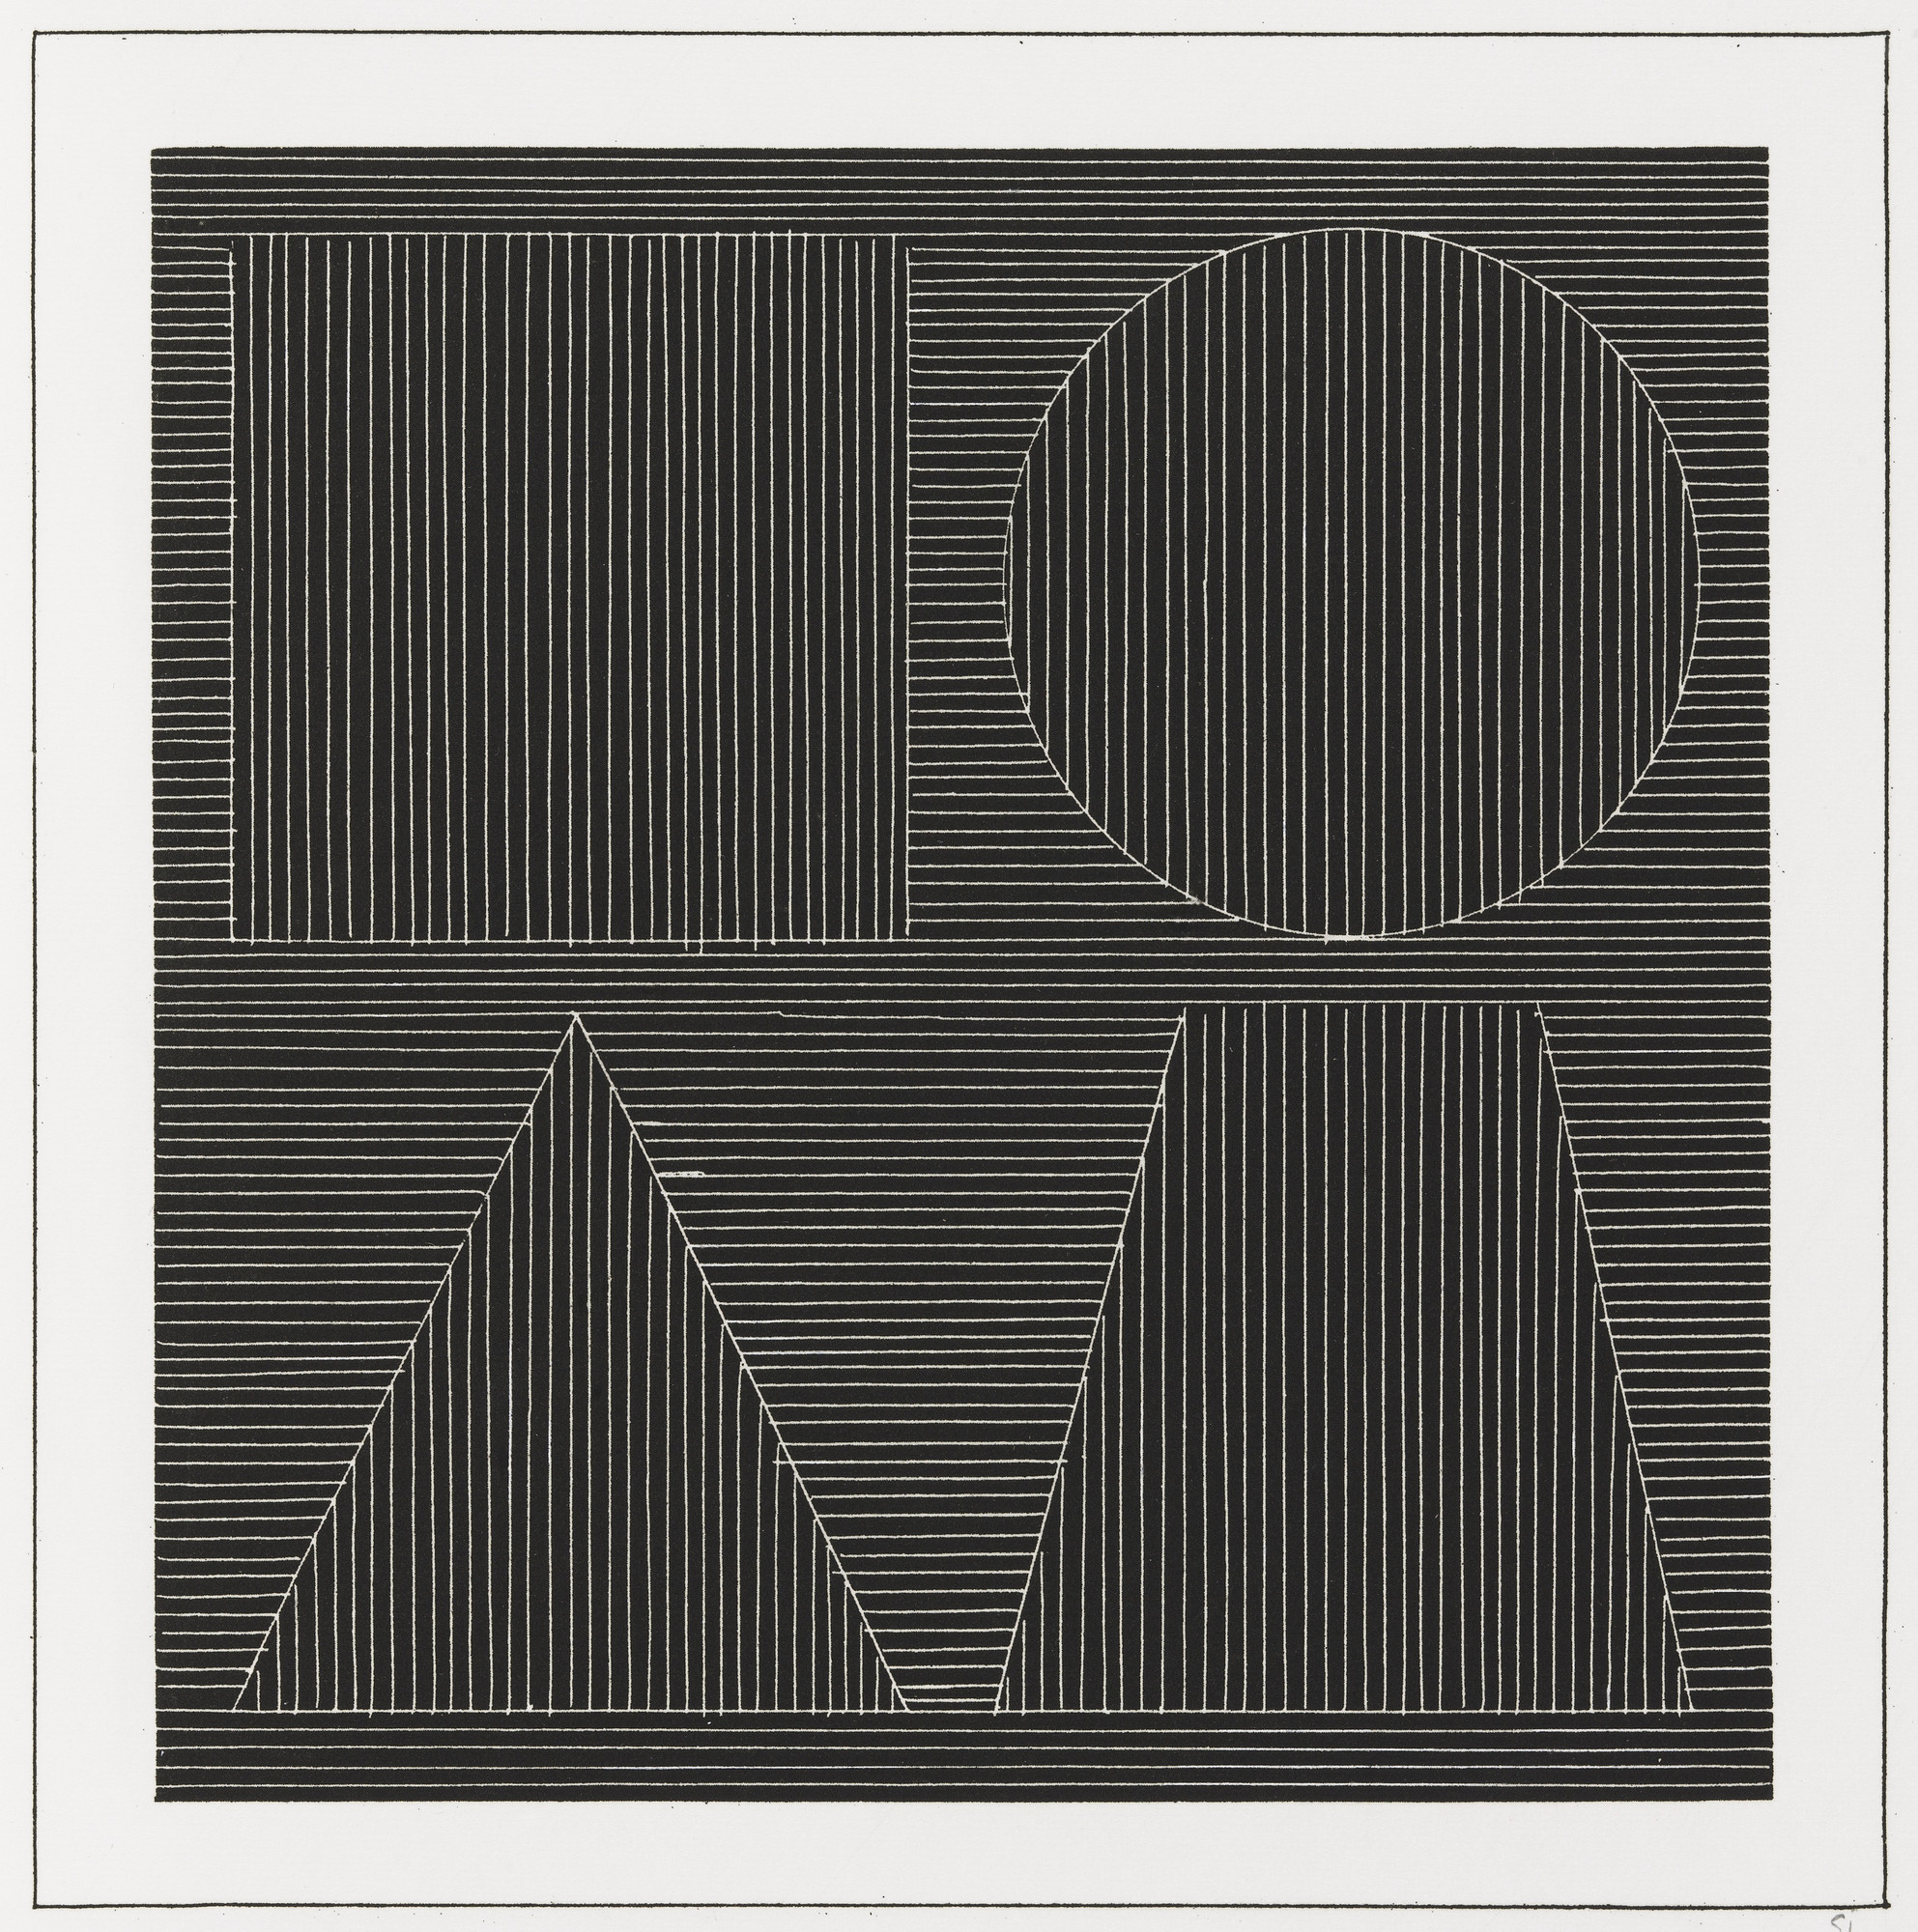 Sol LeWitt. Plate (folio 44) from Six Geometric Figures and All Their Combinations, Volume I. 1980